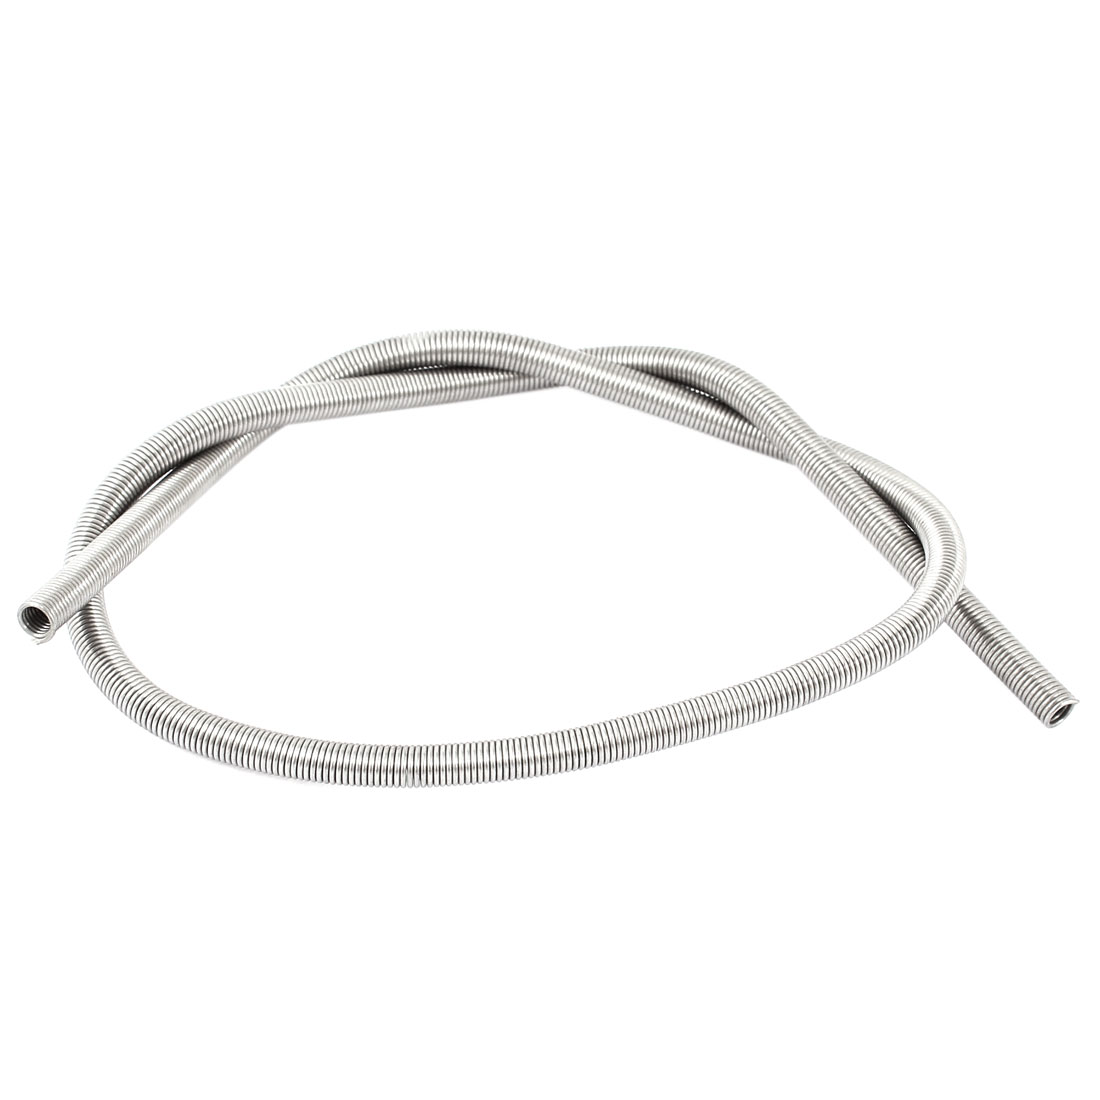 "Silver Tone Metal 1200W 16.1"" Long Heating Element Coil"